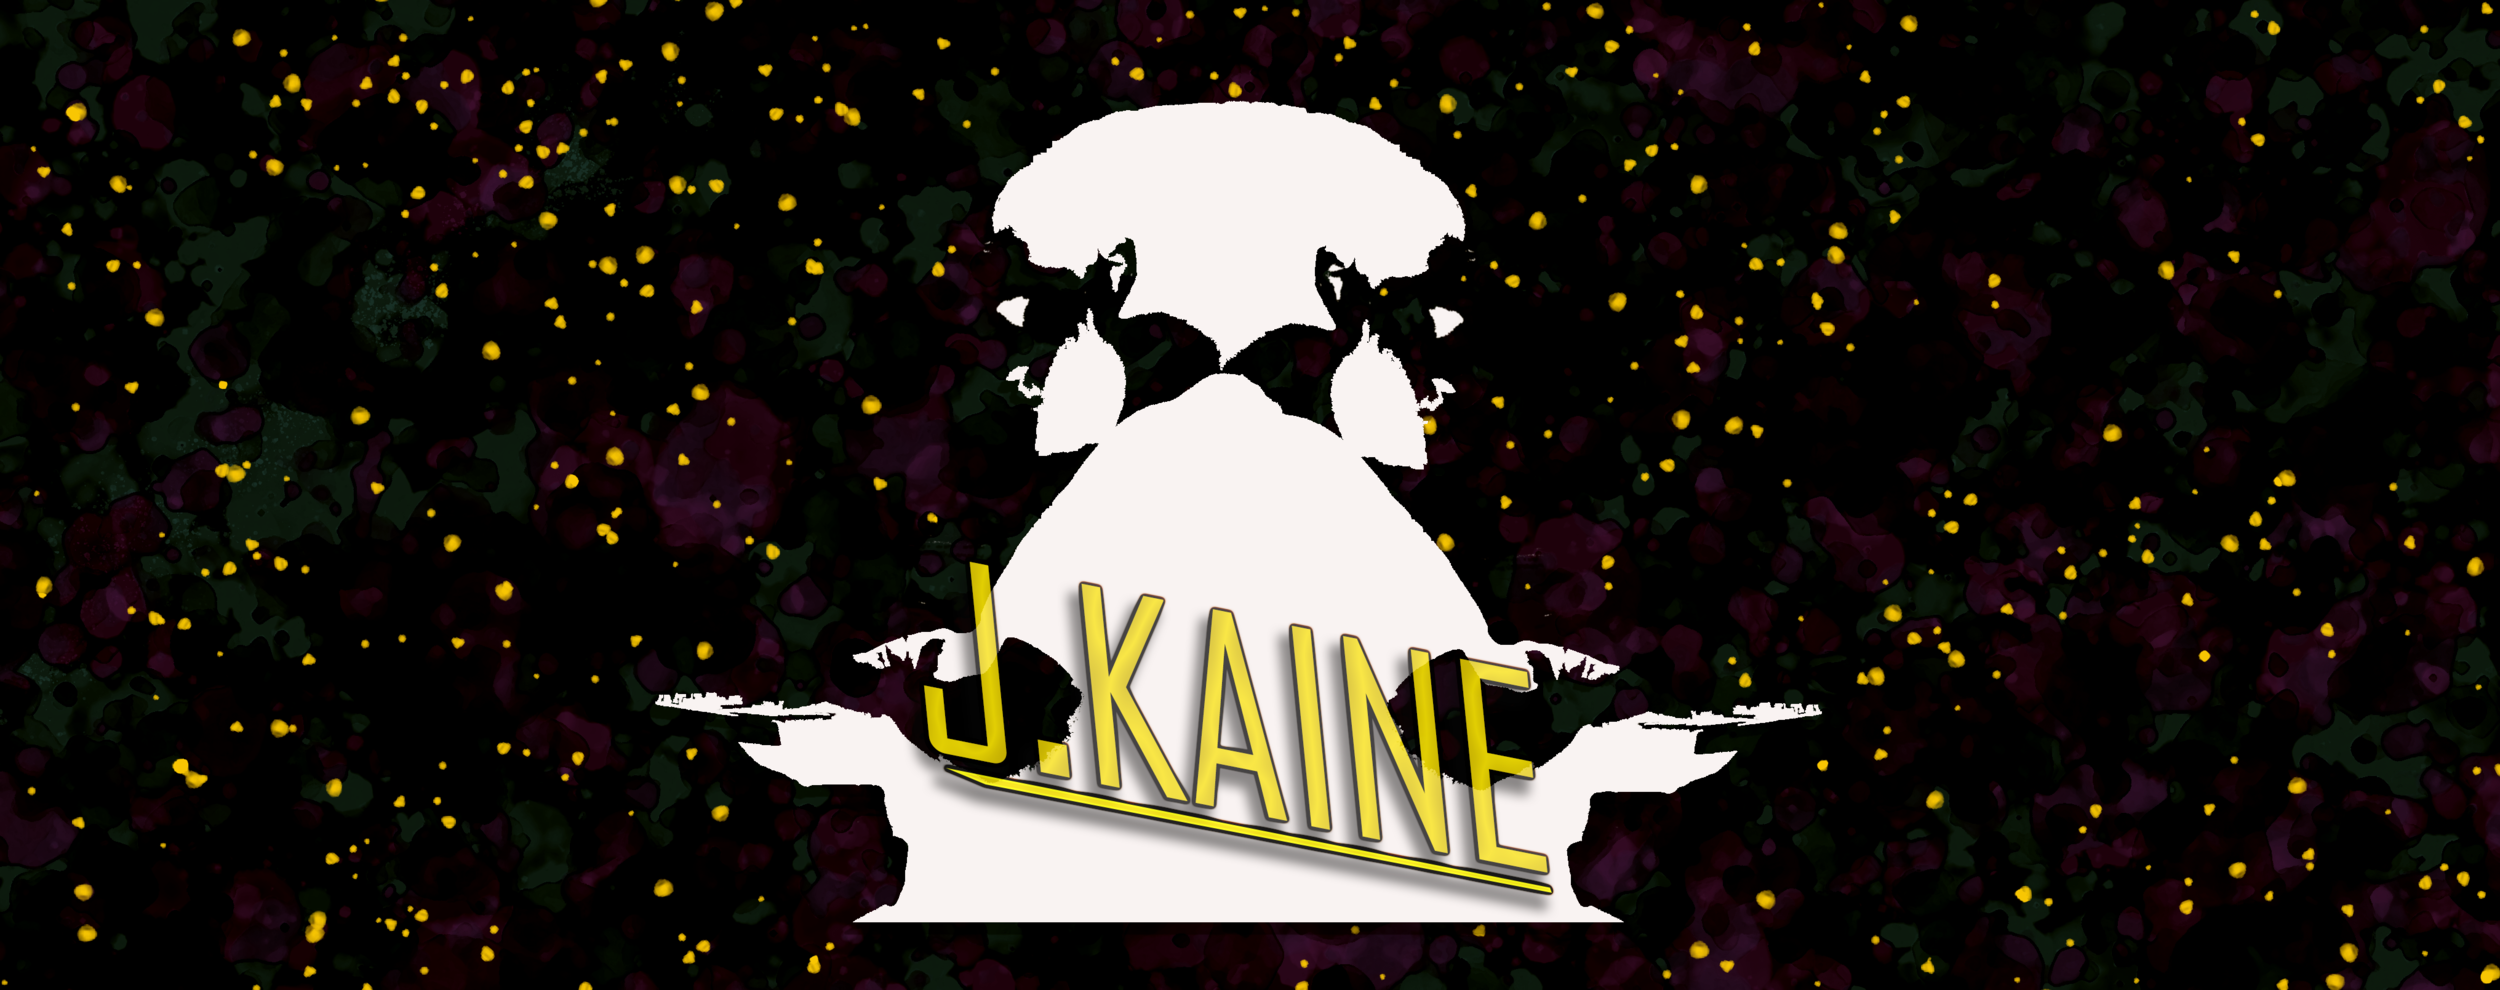 kAINE FIREFLY WEB.png